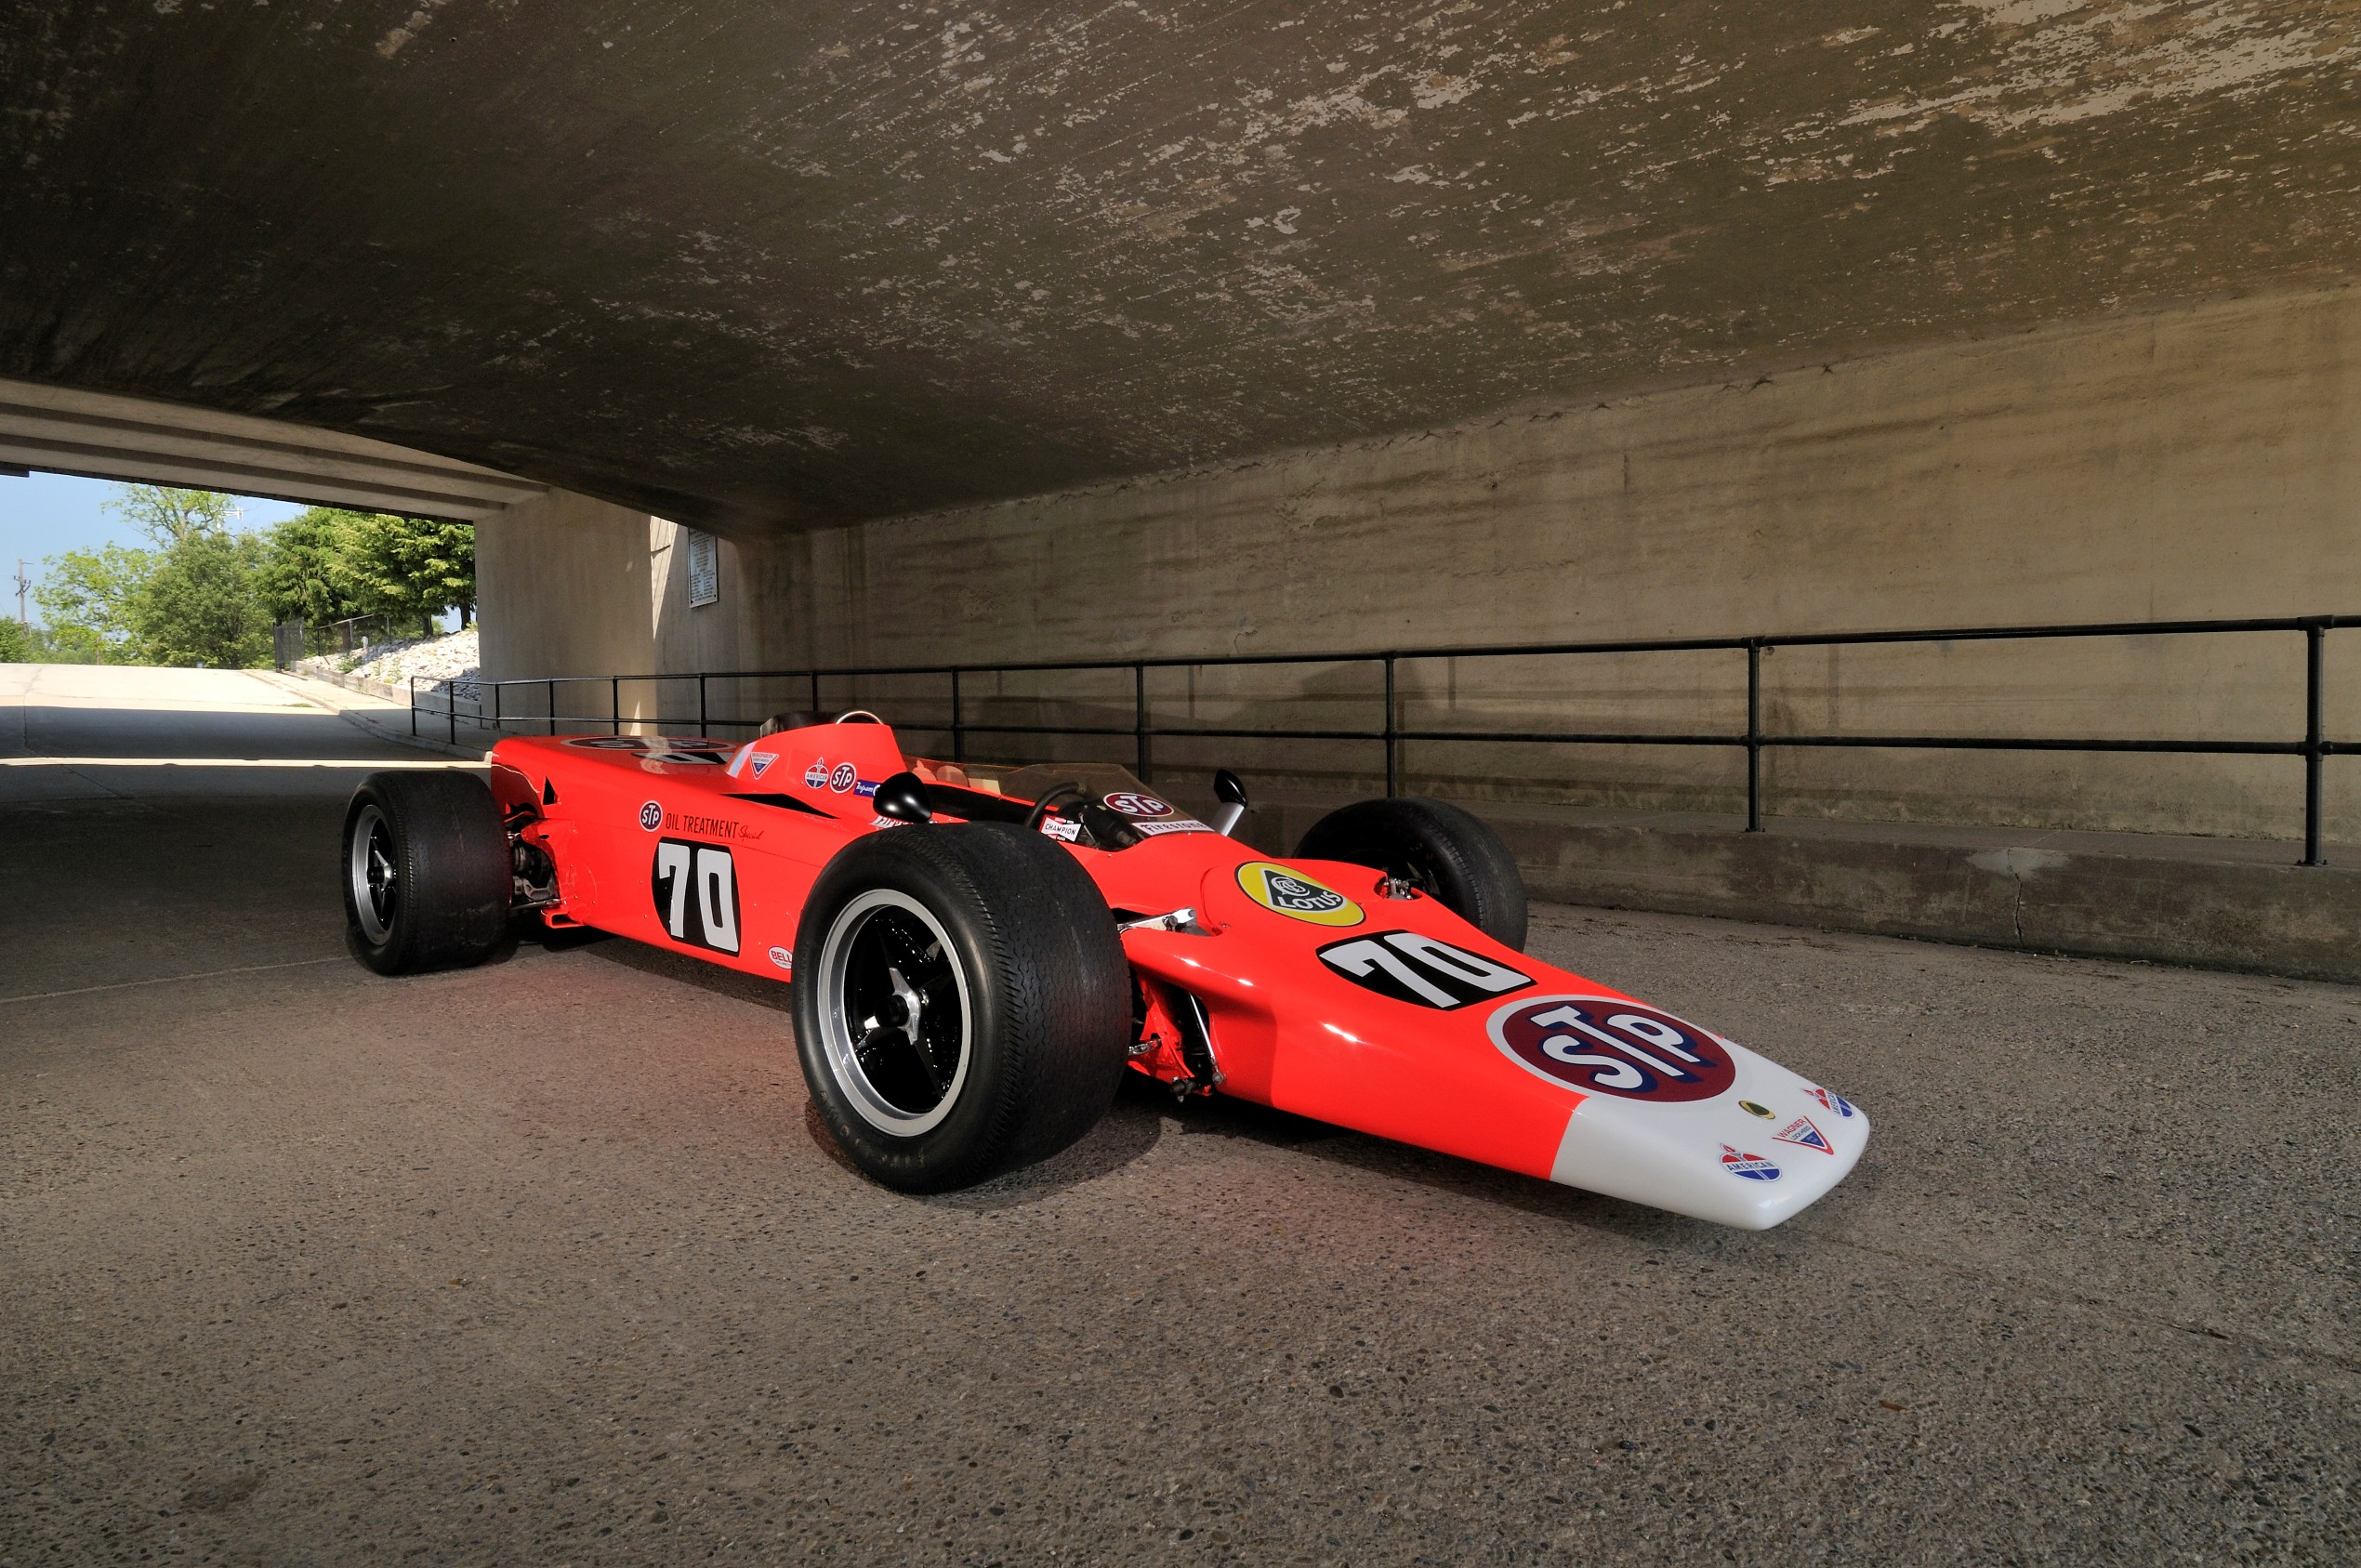 Lotus Type 56 Turbine Indy Car Going To Auction In Monterey